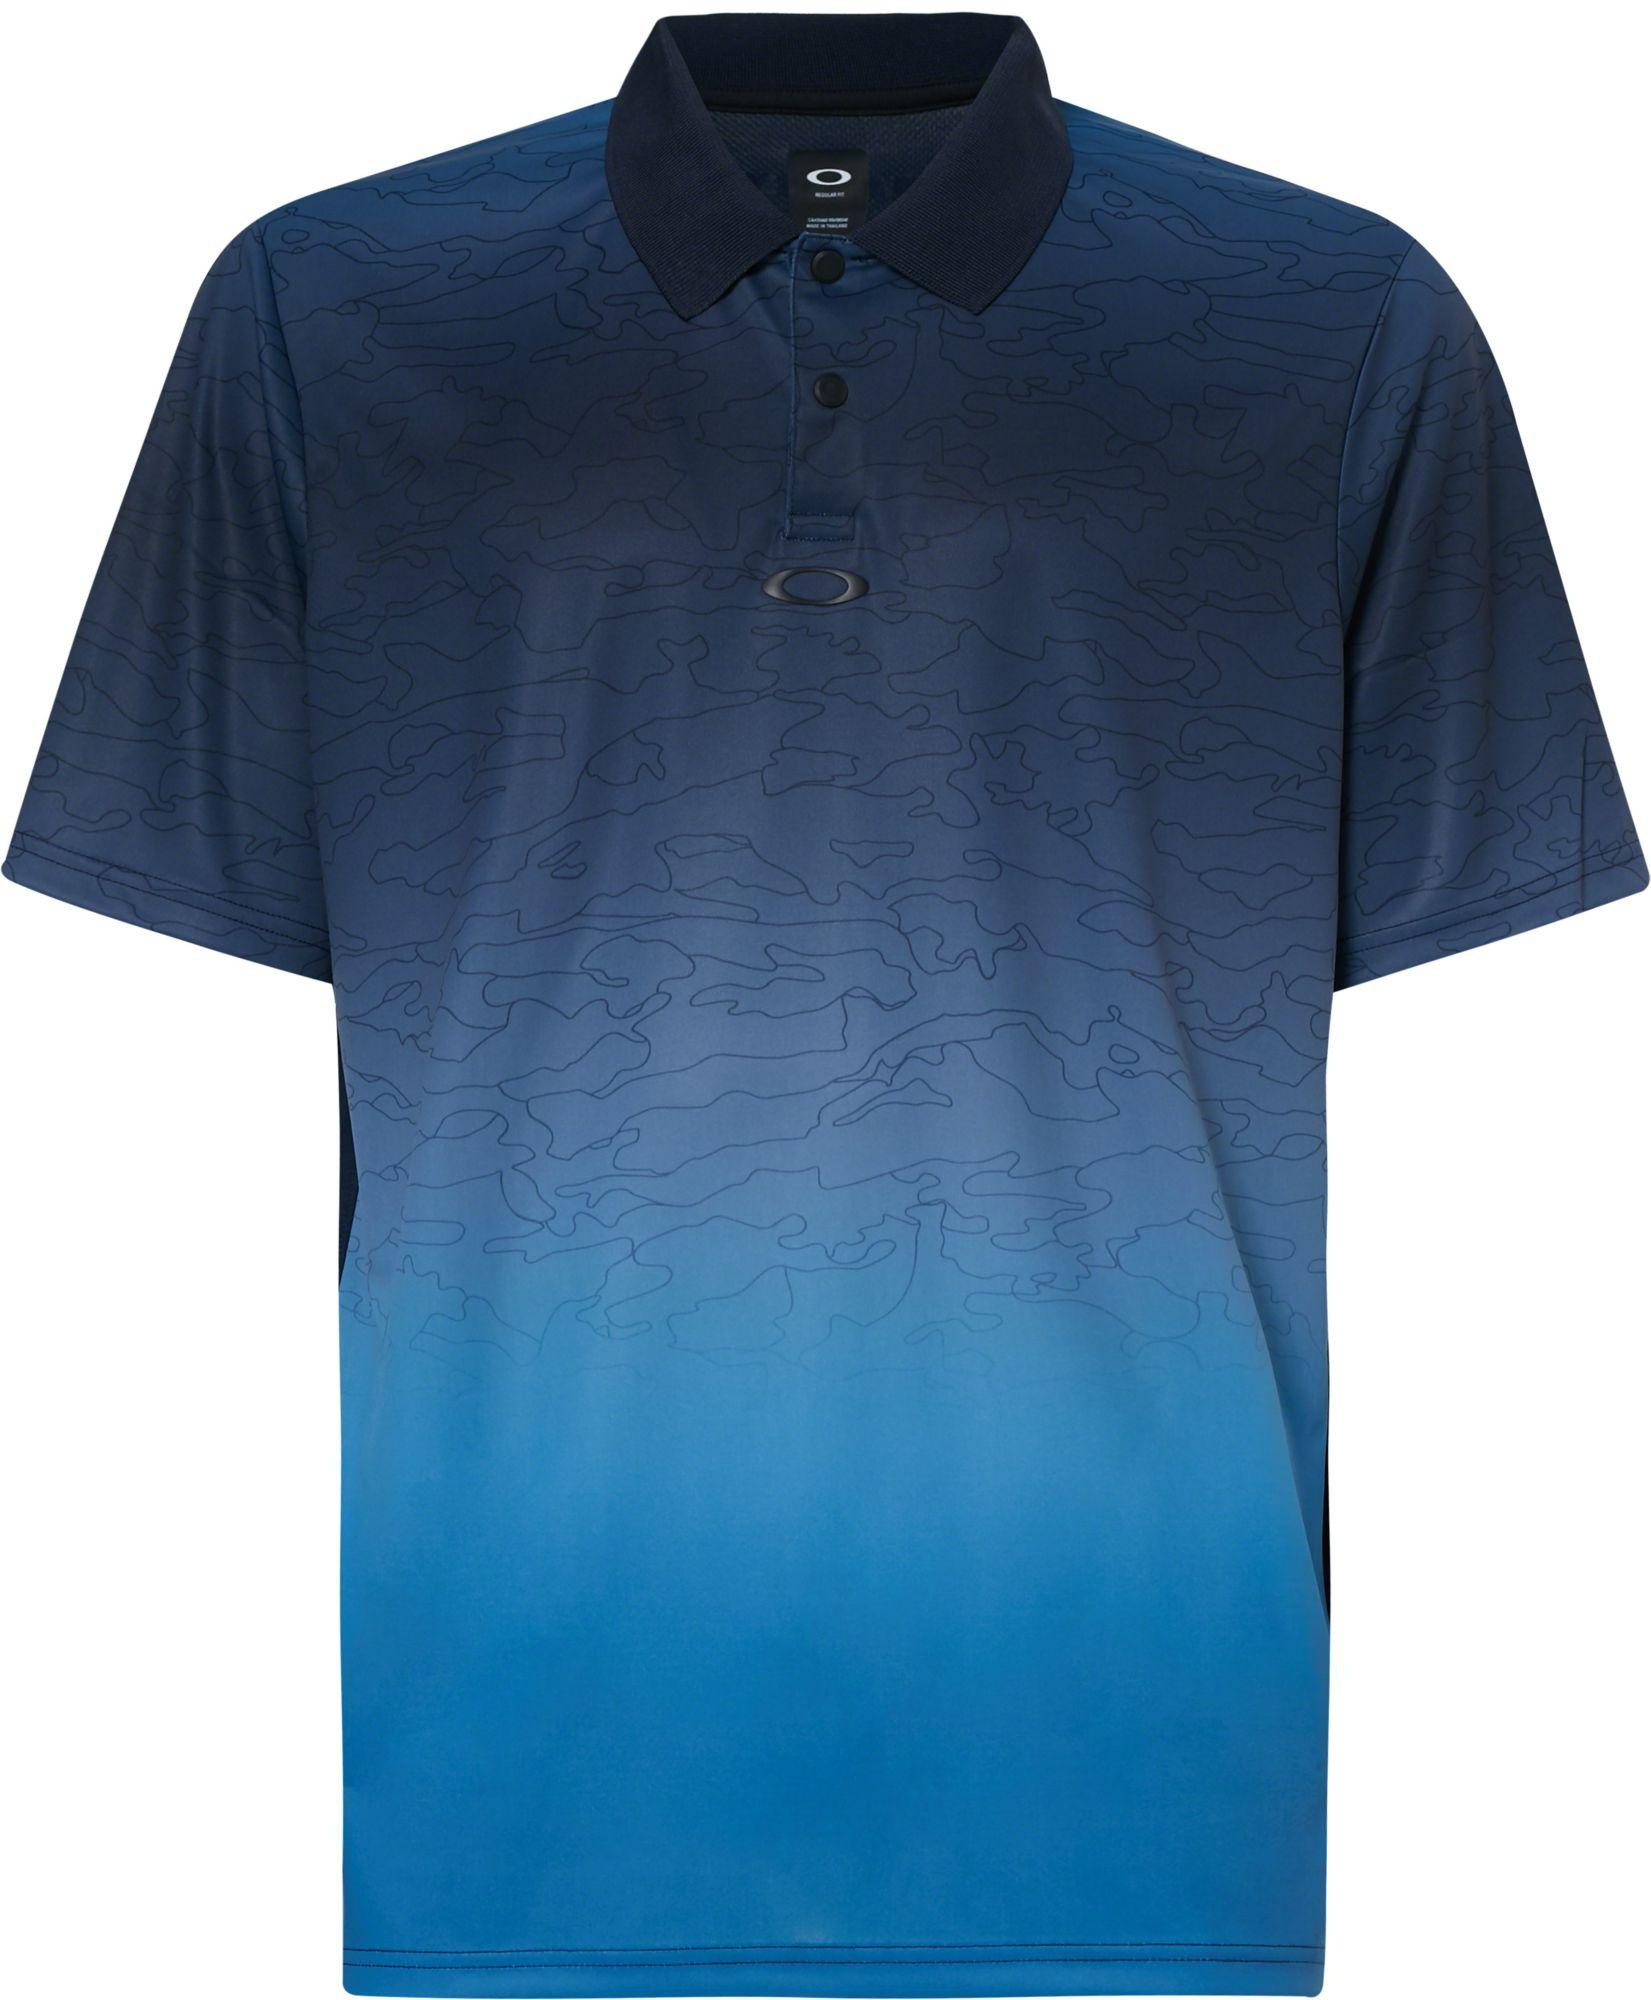 60bd7663 Lyst - Oakley Sublimated Camo Golf Polo in Blue for Men